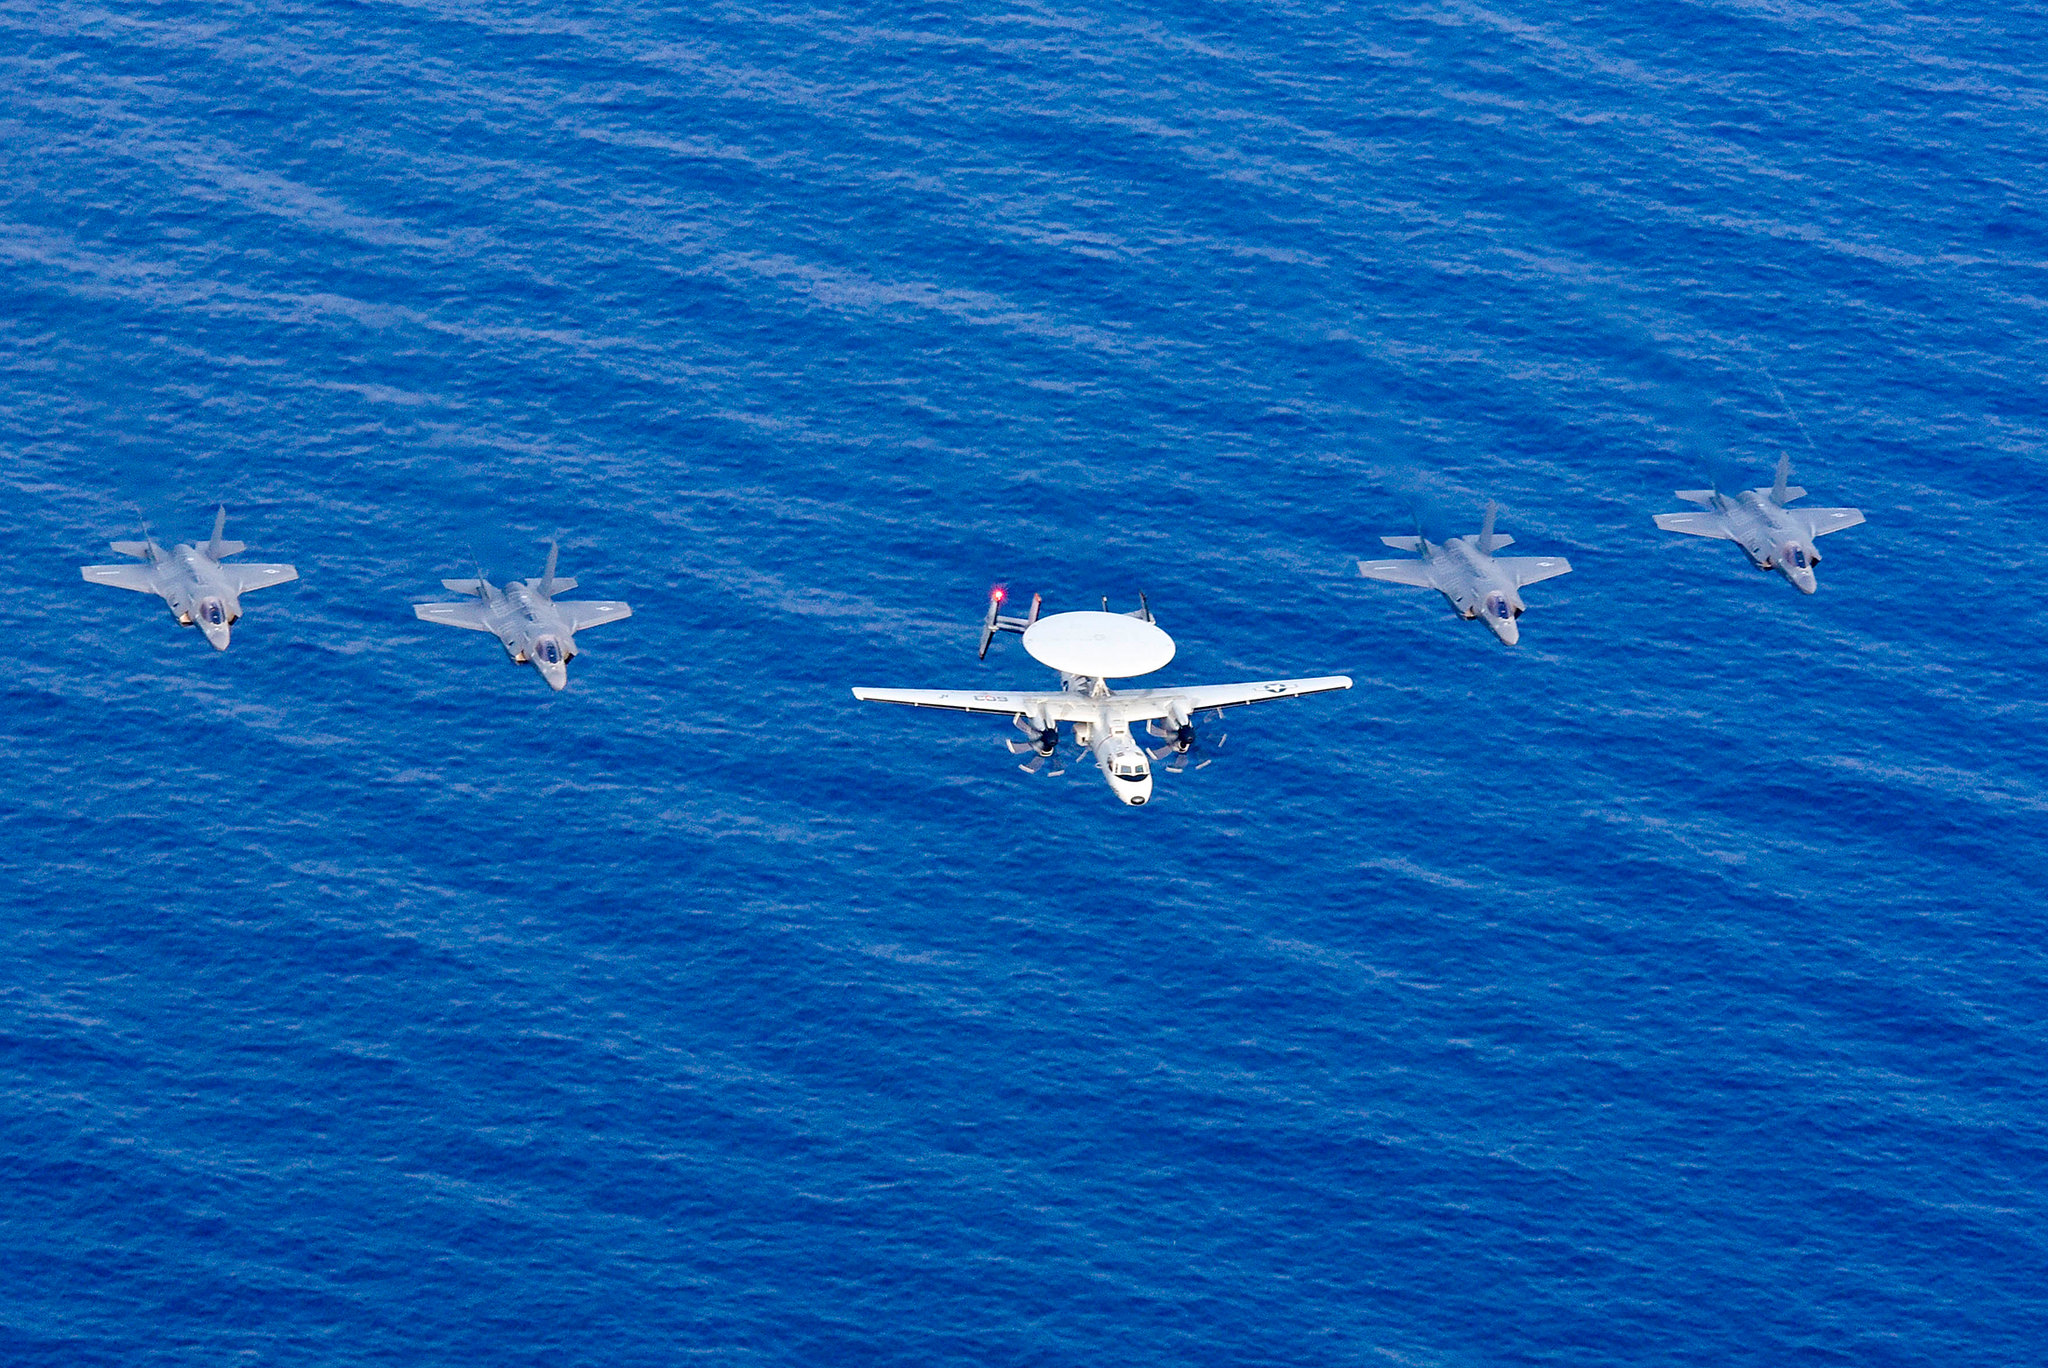 An E-2D Hawkeye and four F-35 Lightning II aircraft fly in formation April 8, 2019, after flying over the amphibious assault ship USS Wasp (LHD 1) during Exercise Balikatan 2019 in the South China Sea. (Mass Communication Specialist 3rd Class Benjamin F. Davella III/Navy)